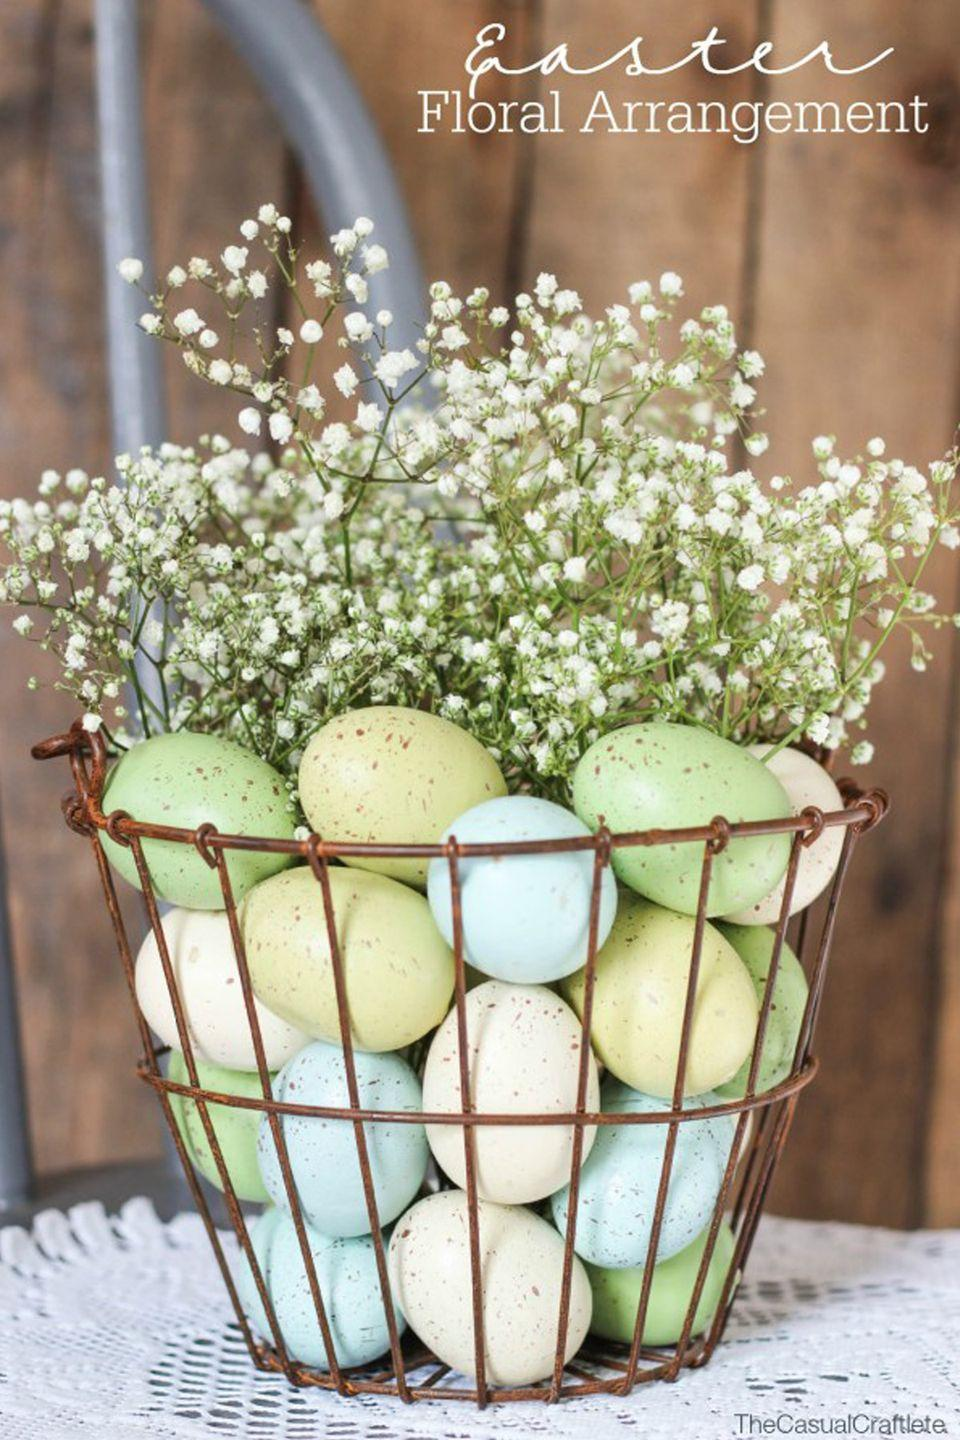 """<p>Sometimes it's the most simple ideas that are the most beautiful, such as this <a href=""""https://www.housebeautiful.com/entertaining/holidays-celebrations/g4242/easter-basket-ideas/"""" rel=""""nofollow noopener"""" target=""""_blank"""" data-ylk=""""slk:egg-filled basket"""" class=""""link rapid-noclick-resp"""">egg-filled basket</a> topped with a plume of baby's breath.</p><p><em><a href=""""http://www.thecasualcraftlete.com/2015/03/24/easter-floral-arrangement/"""" rel=""""nofollow noopener"""" target=""""_blank"""" data-ylk=""""slk:Get the tutorial from The Casual Craftlete »"""" class=""""link rapid-noclick-resp"""">Get the tutorial from The Casual Craftlete »</a></em></p><p>Jungalow Double Hoop Planet, $59 <a class=""""link rapid-noclick-resp"""" href=""""https://www.jungalow.com/products/double-hoop-planter?_pos=5&_sid=a967a4e8c&_ss=r"""" rel=""""nofollow noopener"""" target=""""_blank"""" data-ylk=""""slk:BUY NOW"""">BUY NOW</a></p>"""